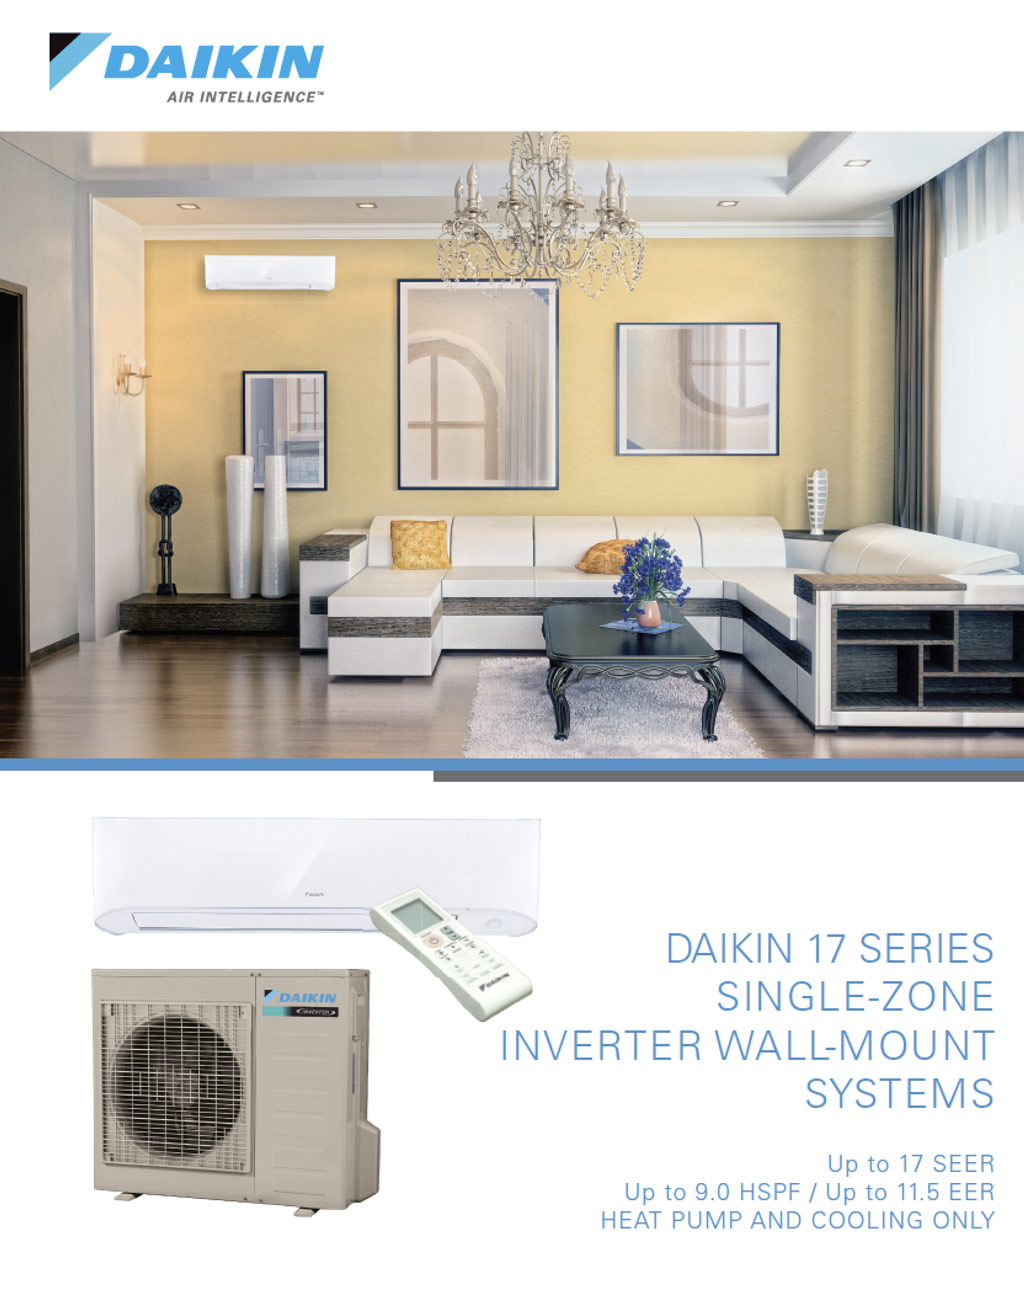 Daikin 17 Series Cover